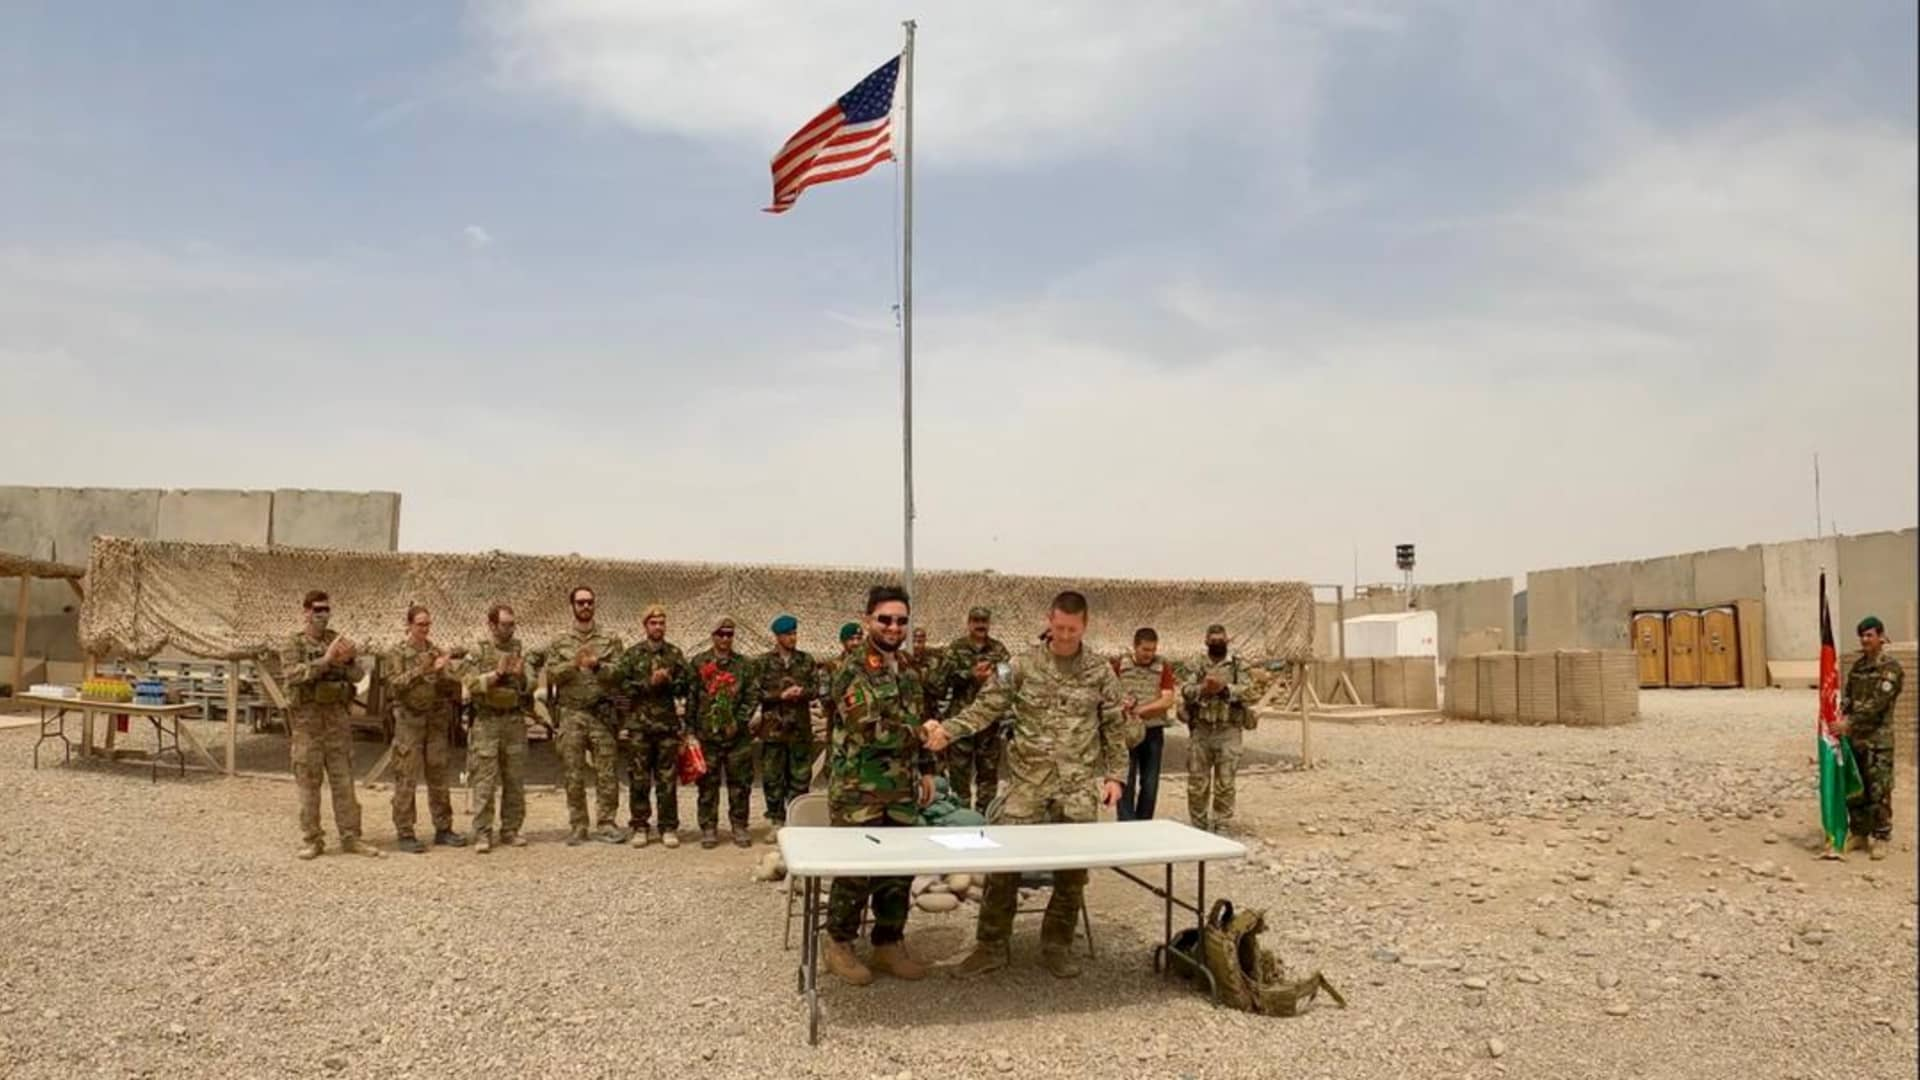 Handover ceremony at Camp Anthonic, from U.S. Army to Afghan Defense Forces in Helmand province, Afghanistan May 2, 2021.